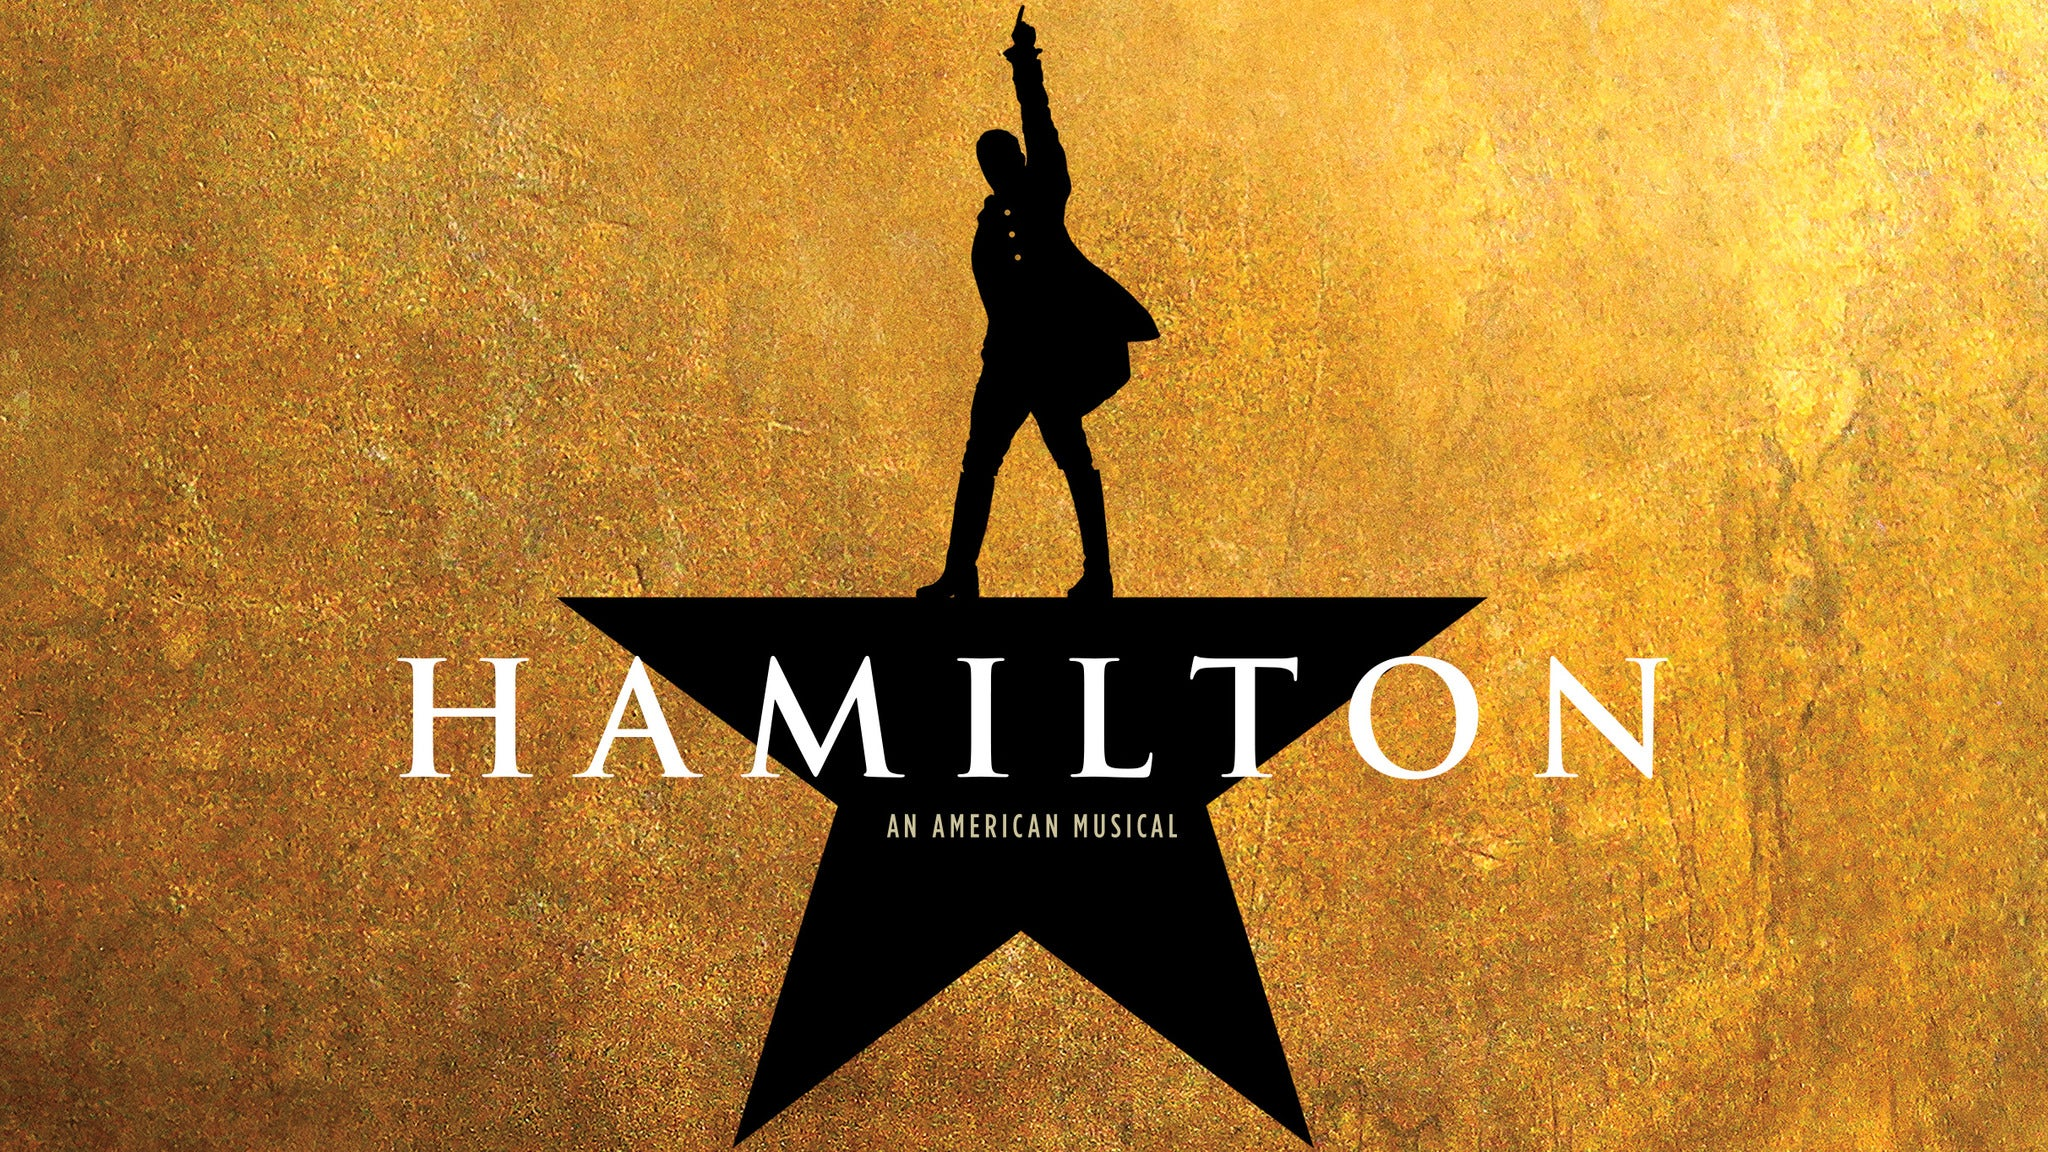 Hamilton (Chicago) at The PrivateBank Theatre